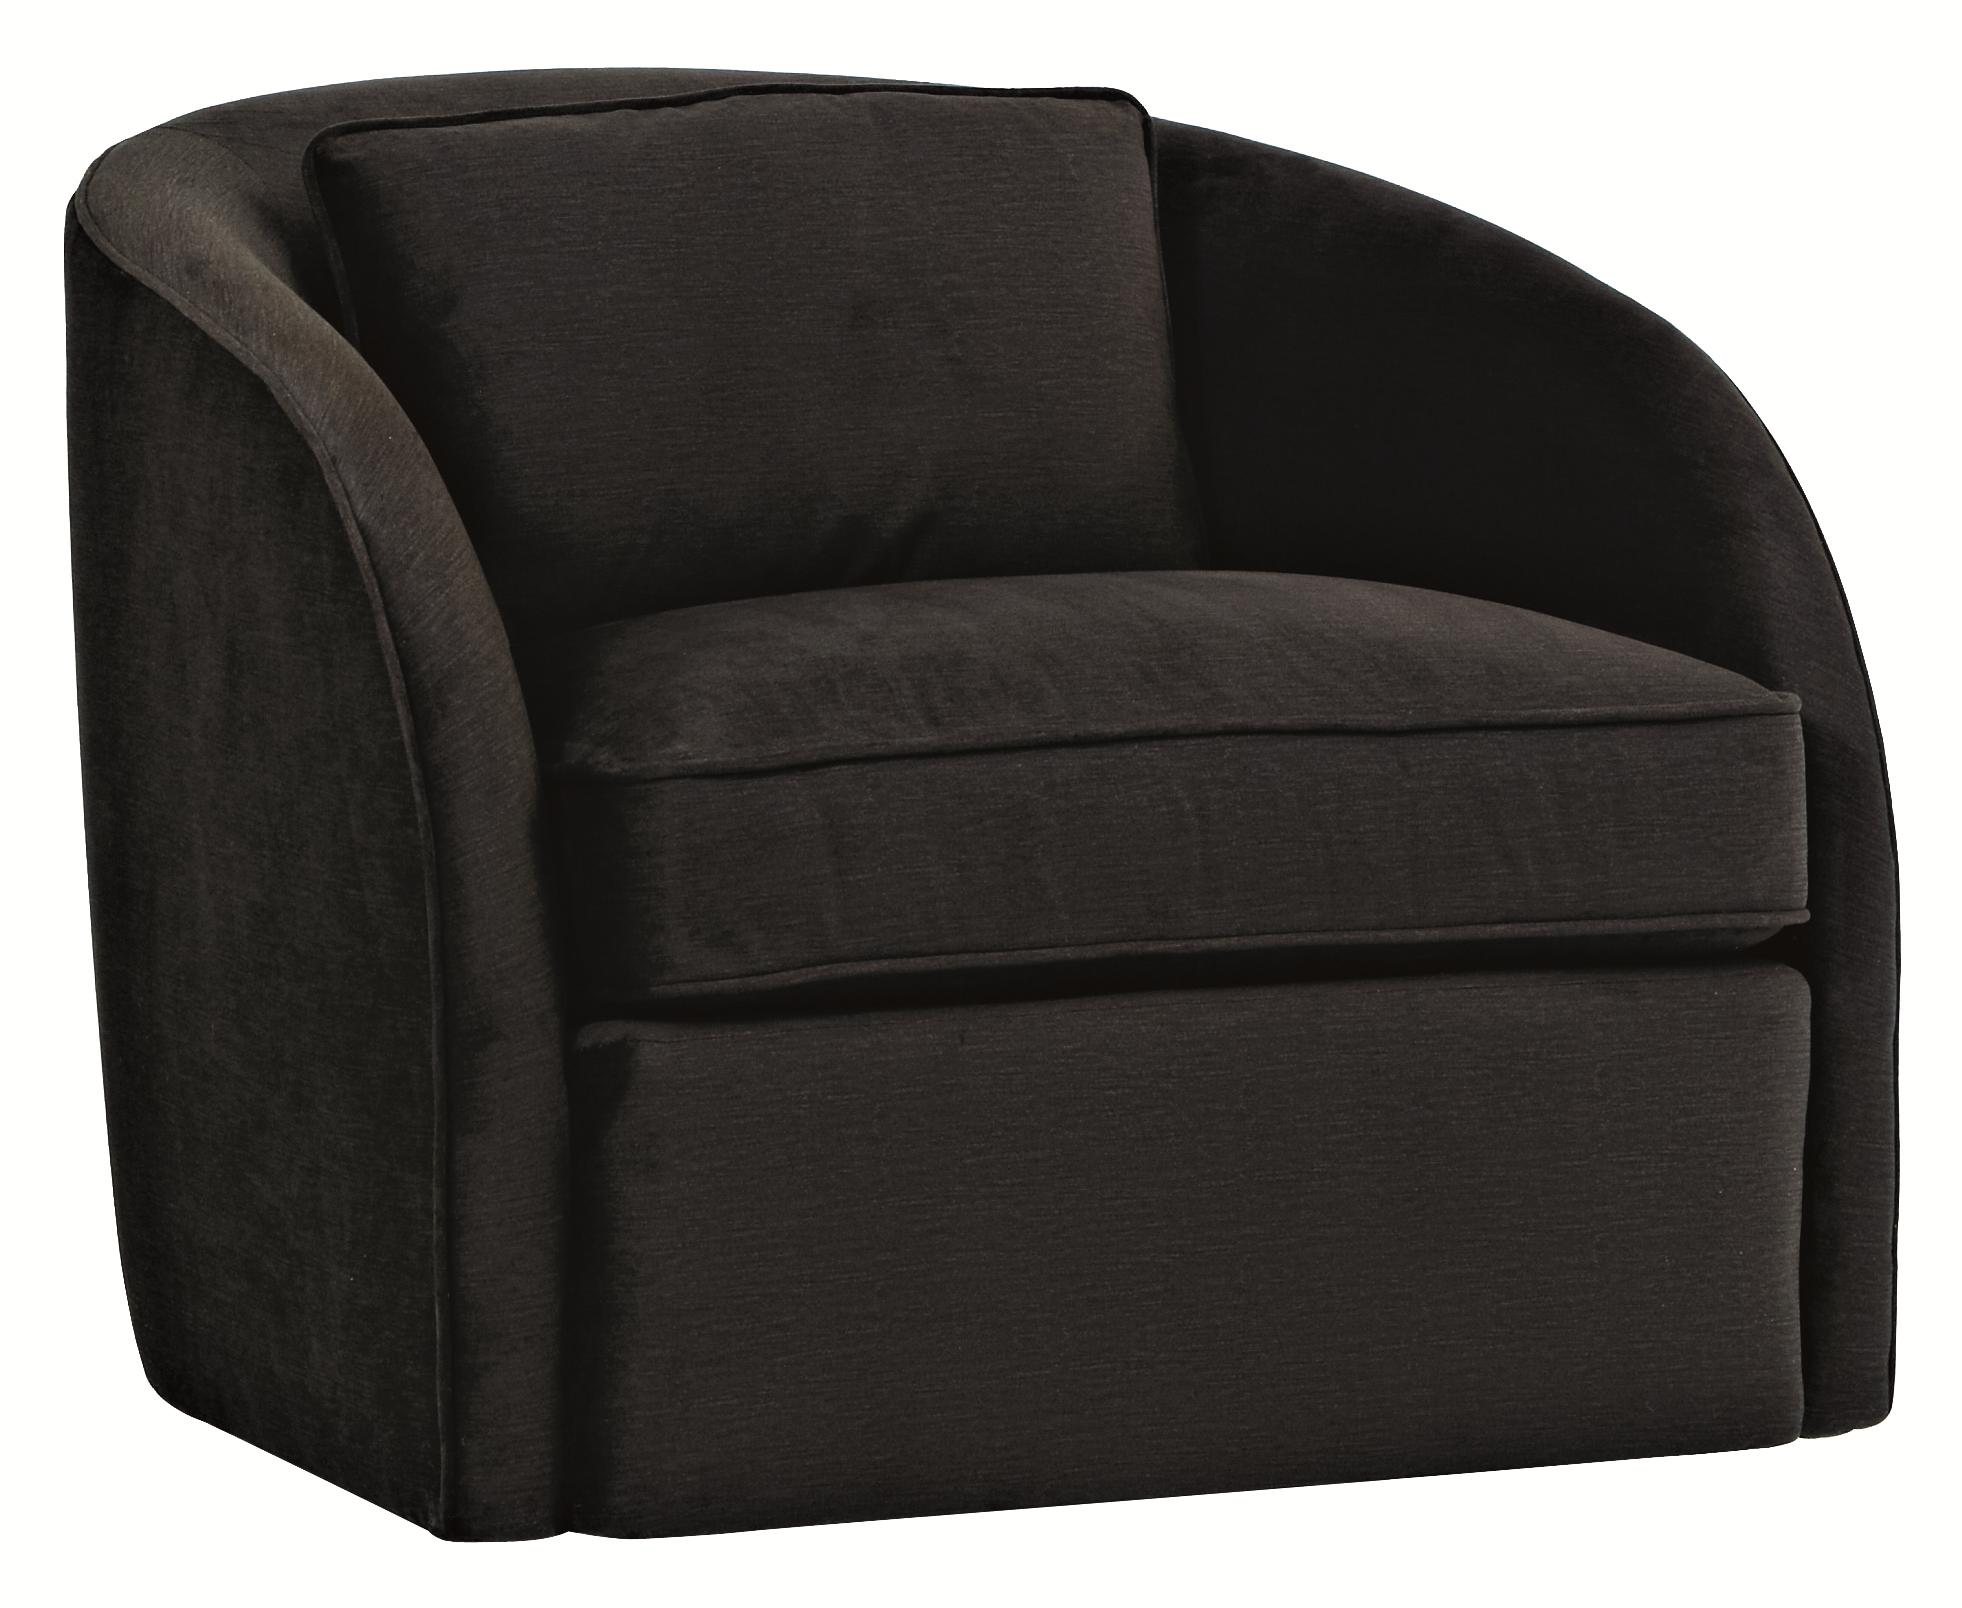 Upholstered Accents Turner Swivel Chair by Bernhardt at Baer's Furniture